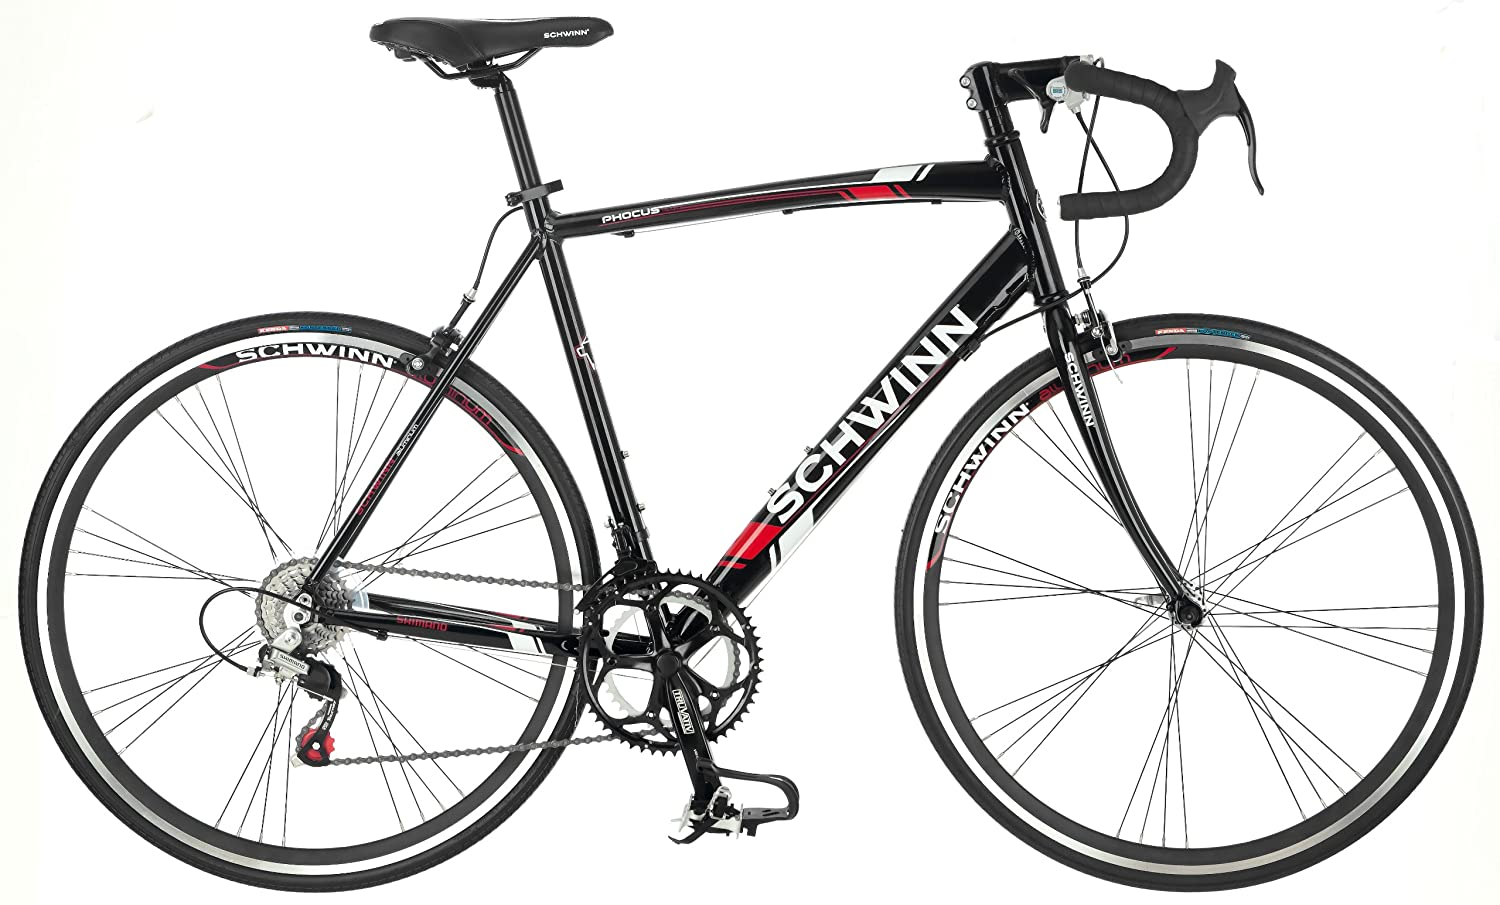 Schwinn Phocus 1400 700C Best Road Bike Under $1000